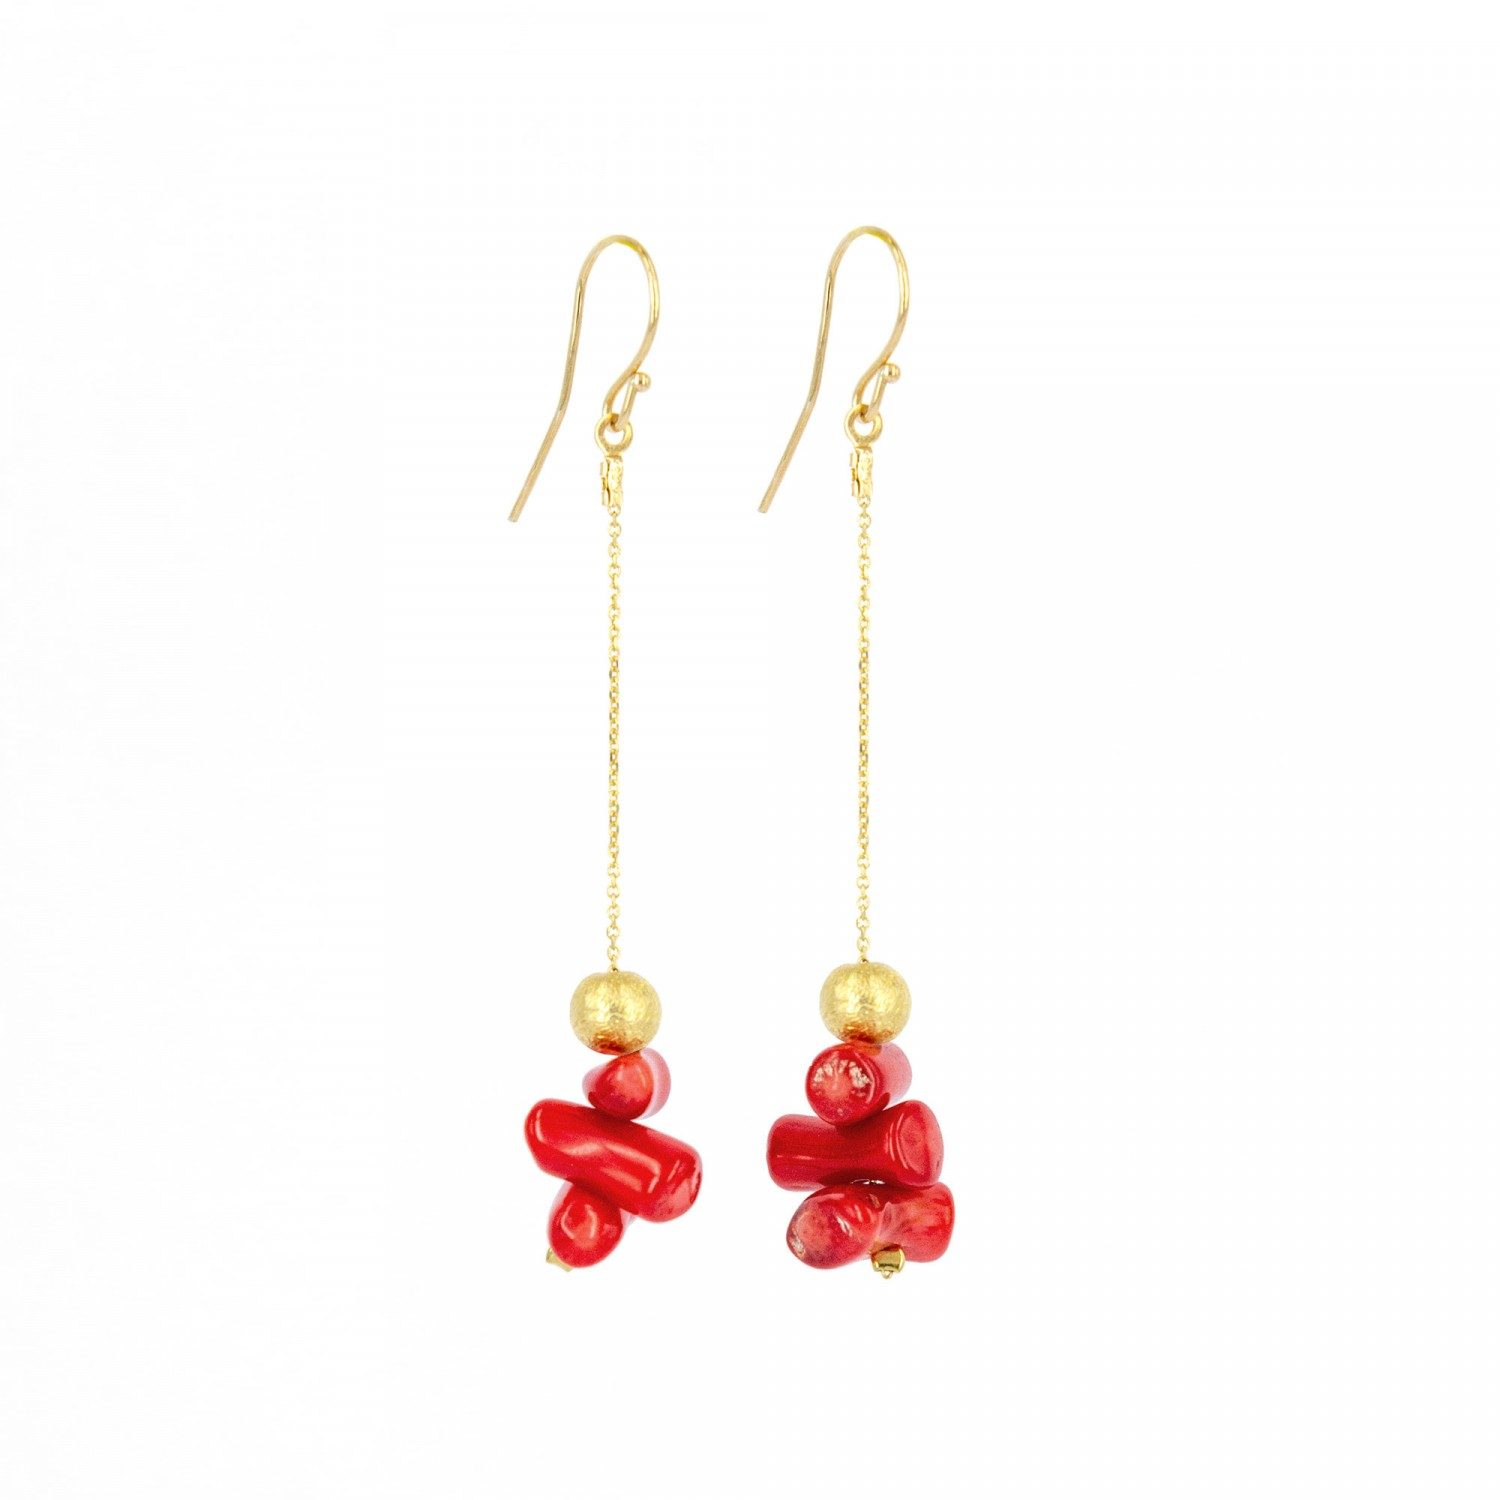 Coral and Sphere Bead Earrings